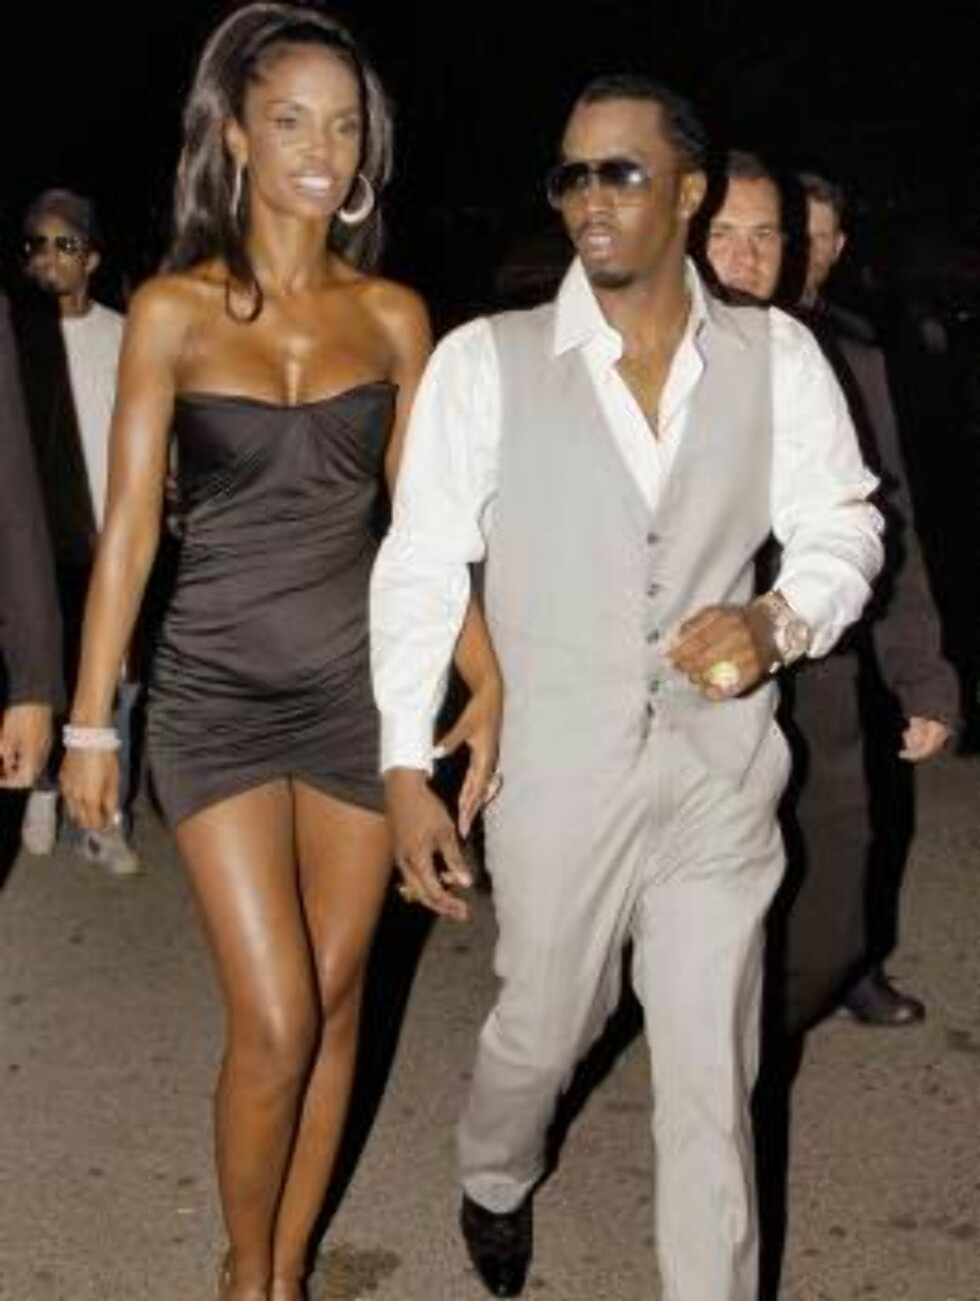 Sean 'P.Diddy' Combs arrives with his grilfriend Kim at the VIP Room night club to attend his 'Unforgivable' party in Saint-Tropez, France on July 31, 2006.   Photo: ABACAPRESS  Code: 4001/102741  COPYRIGHT STELLA PICTURES Foto: STELLA PICTURES